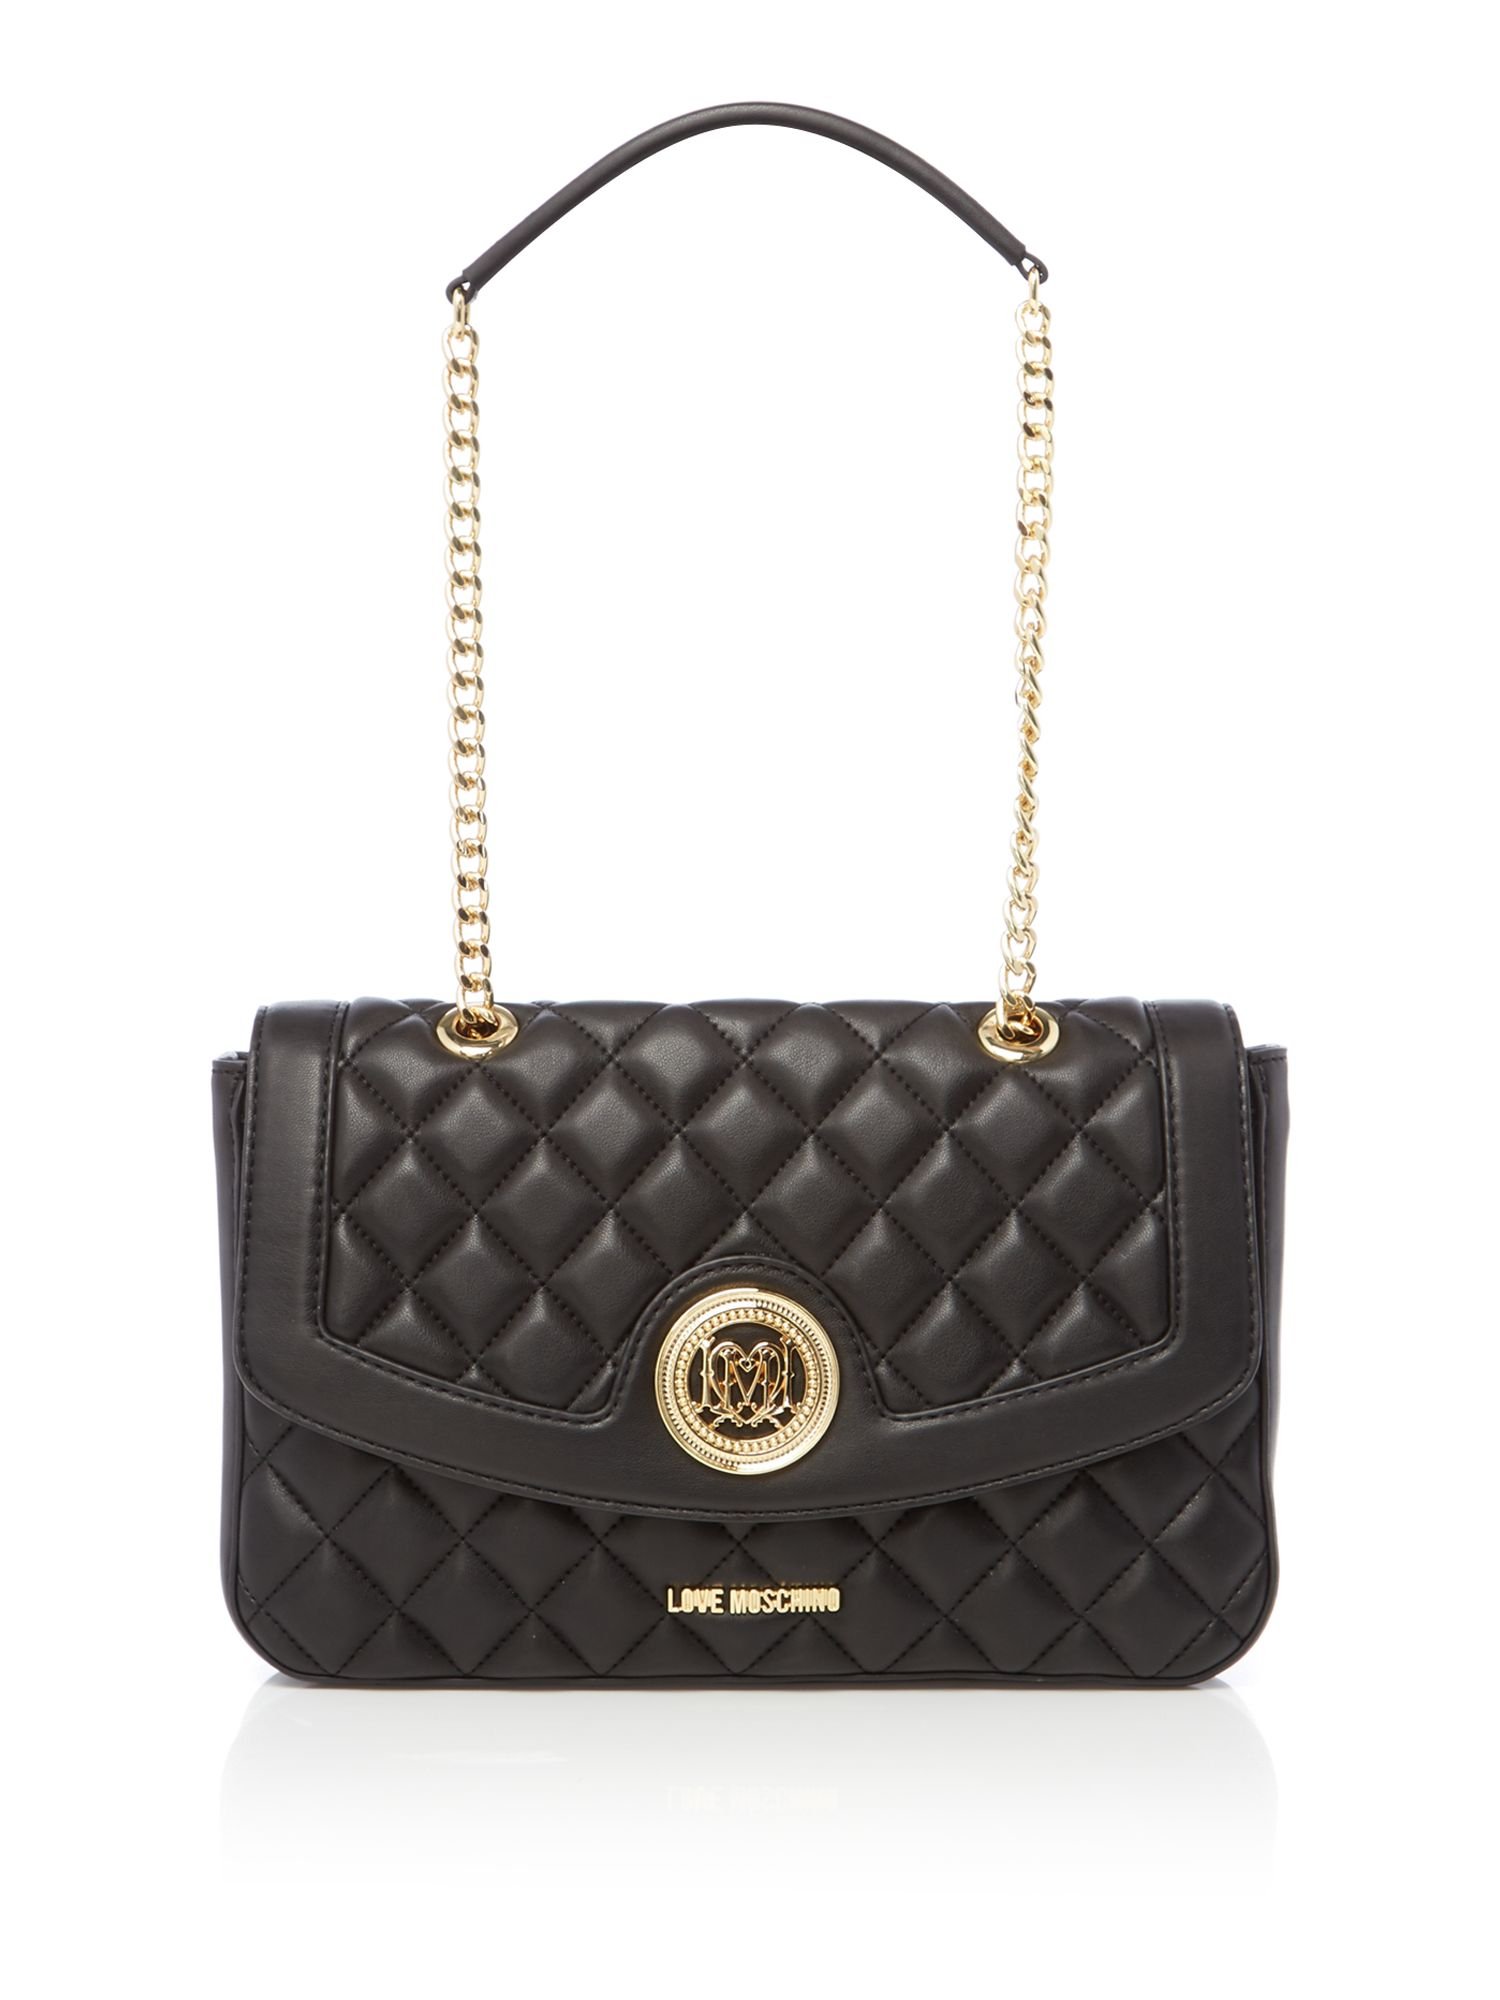 love moschino superquilt black flapover shoulder bag in black lyst. Black Bedroom Furniture Sets. Home Design Ideas